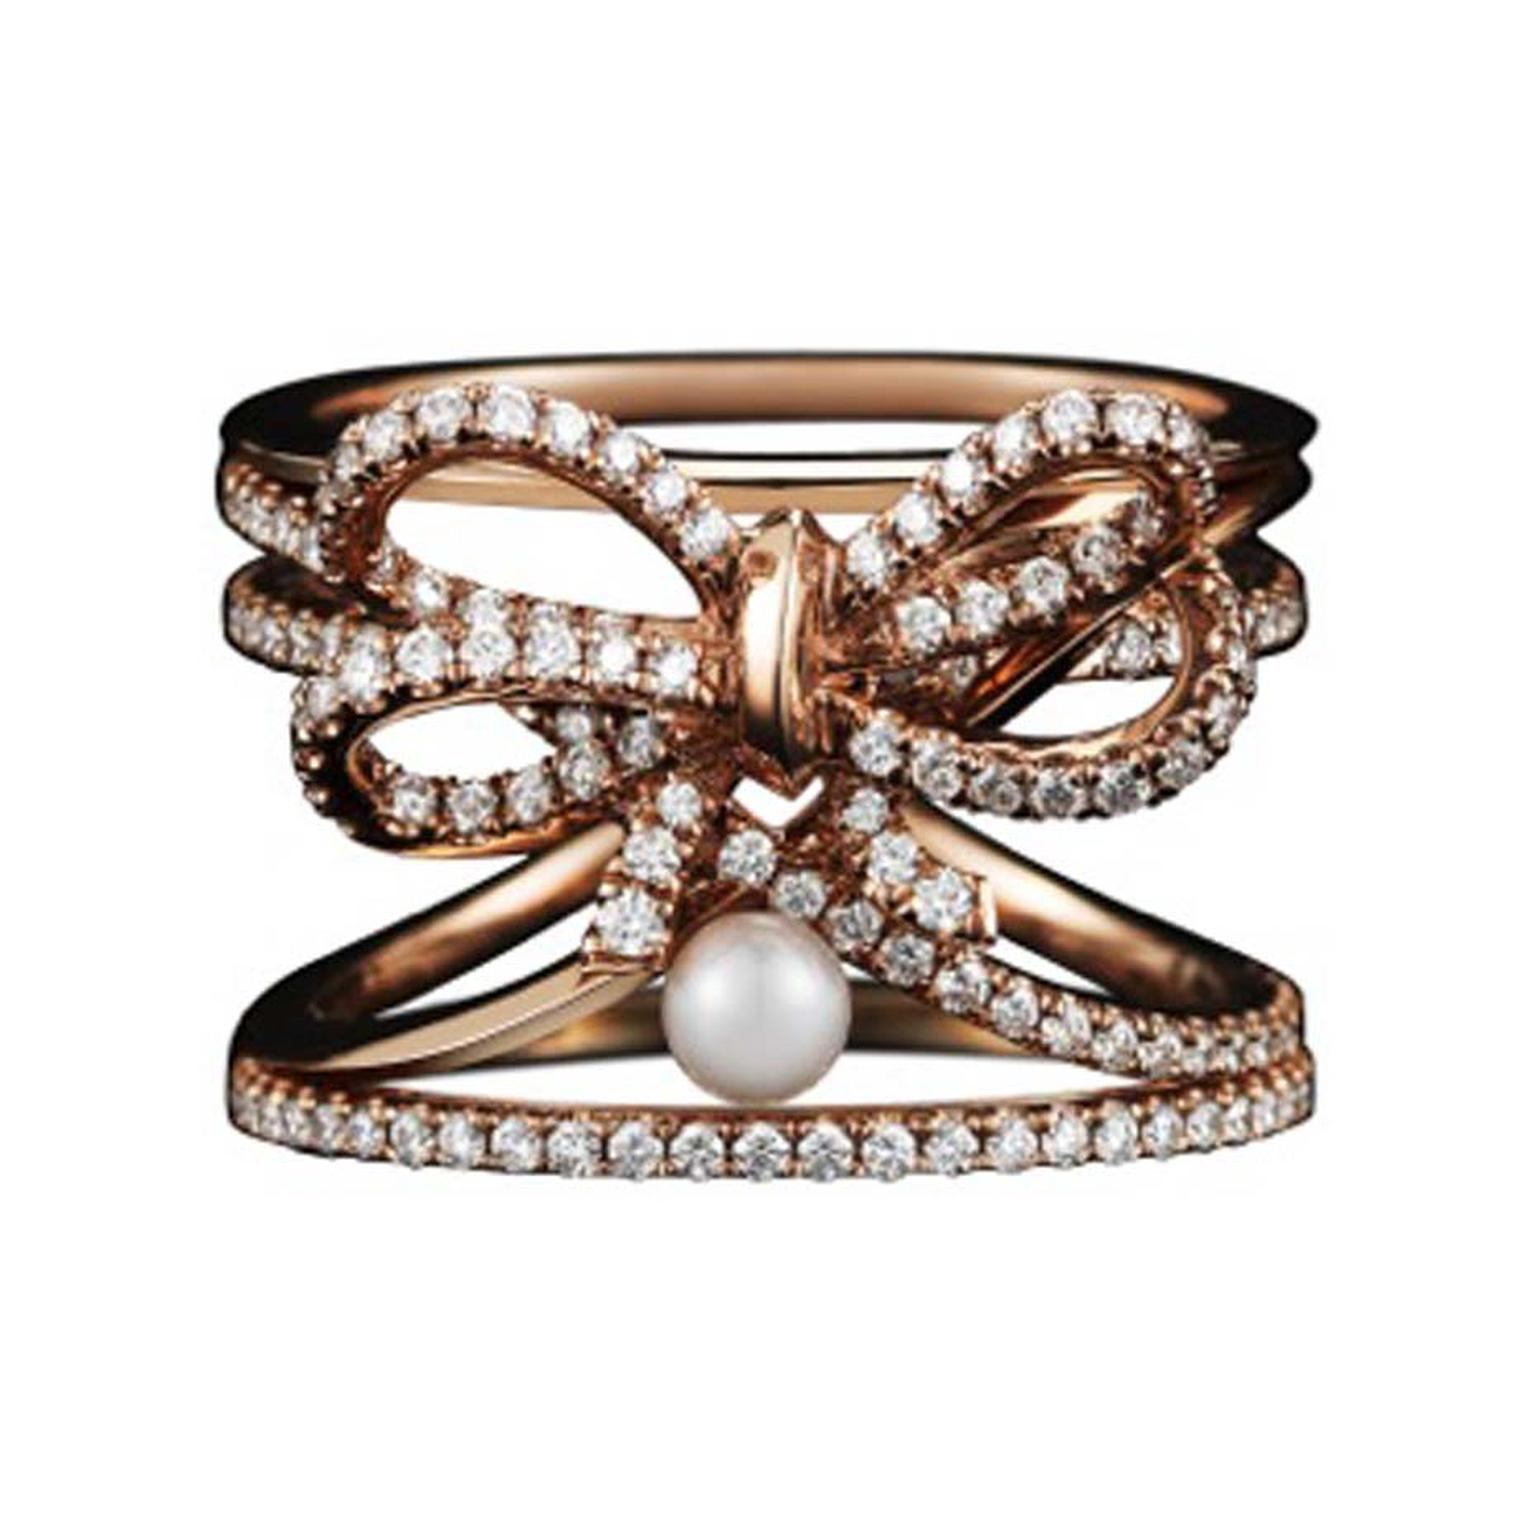 Alexandra Mor contemporary diamond bow and pearl ring in rose gold.